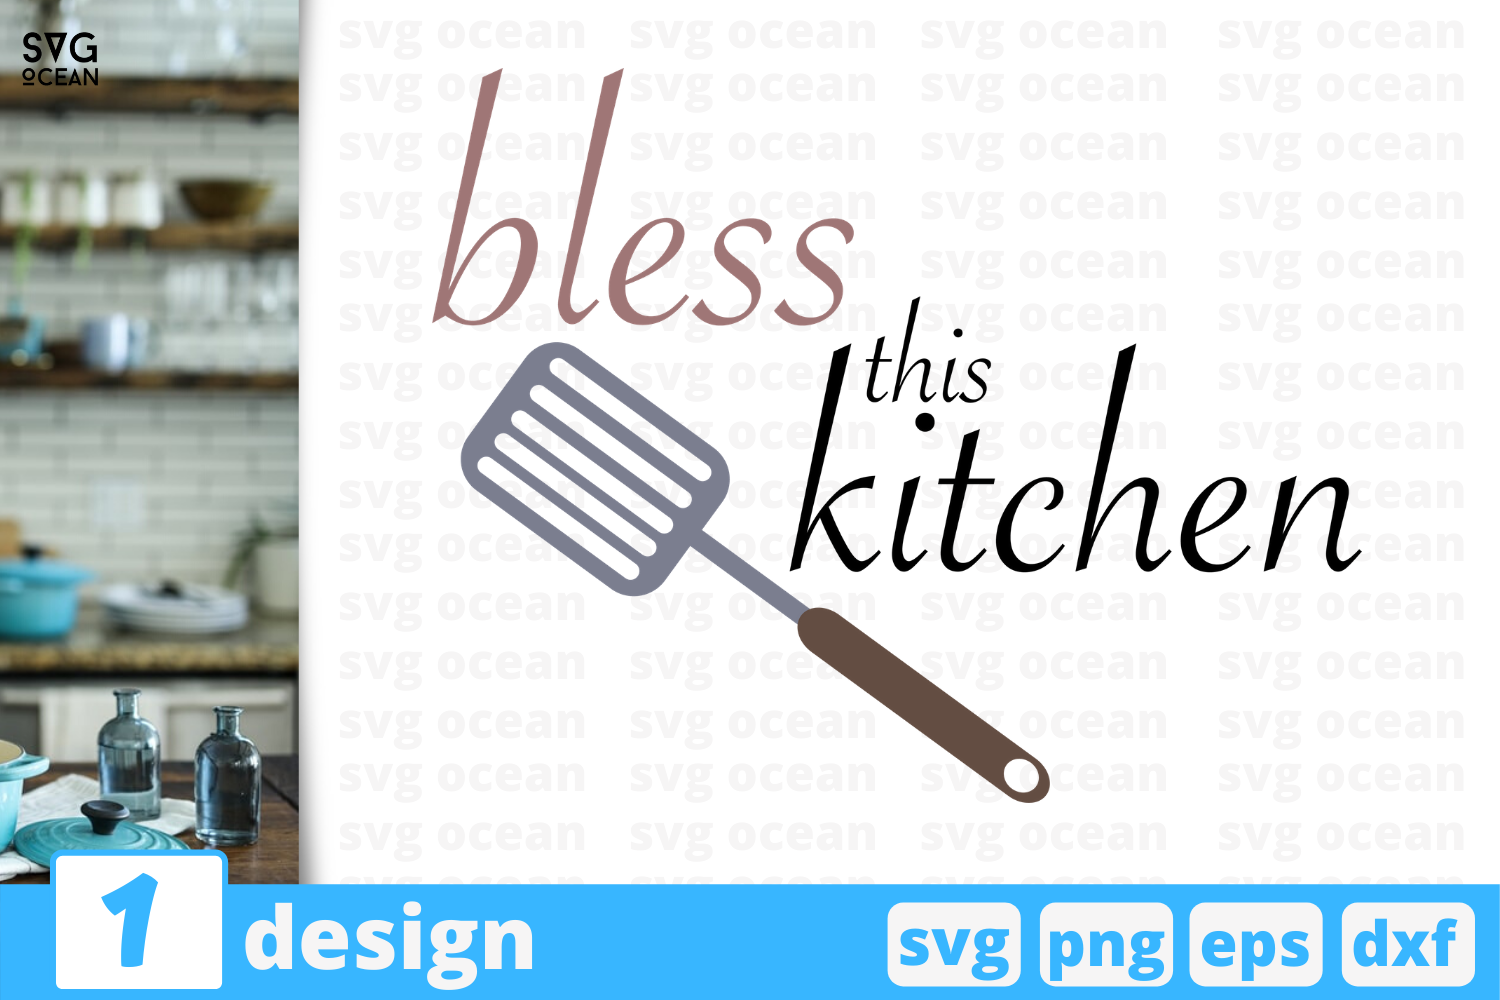 Download Free Bless This Kitchen Graphic By Svgocean Creative Fabrica for Cricut Explore, Silhouette and other cutting machines.